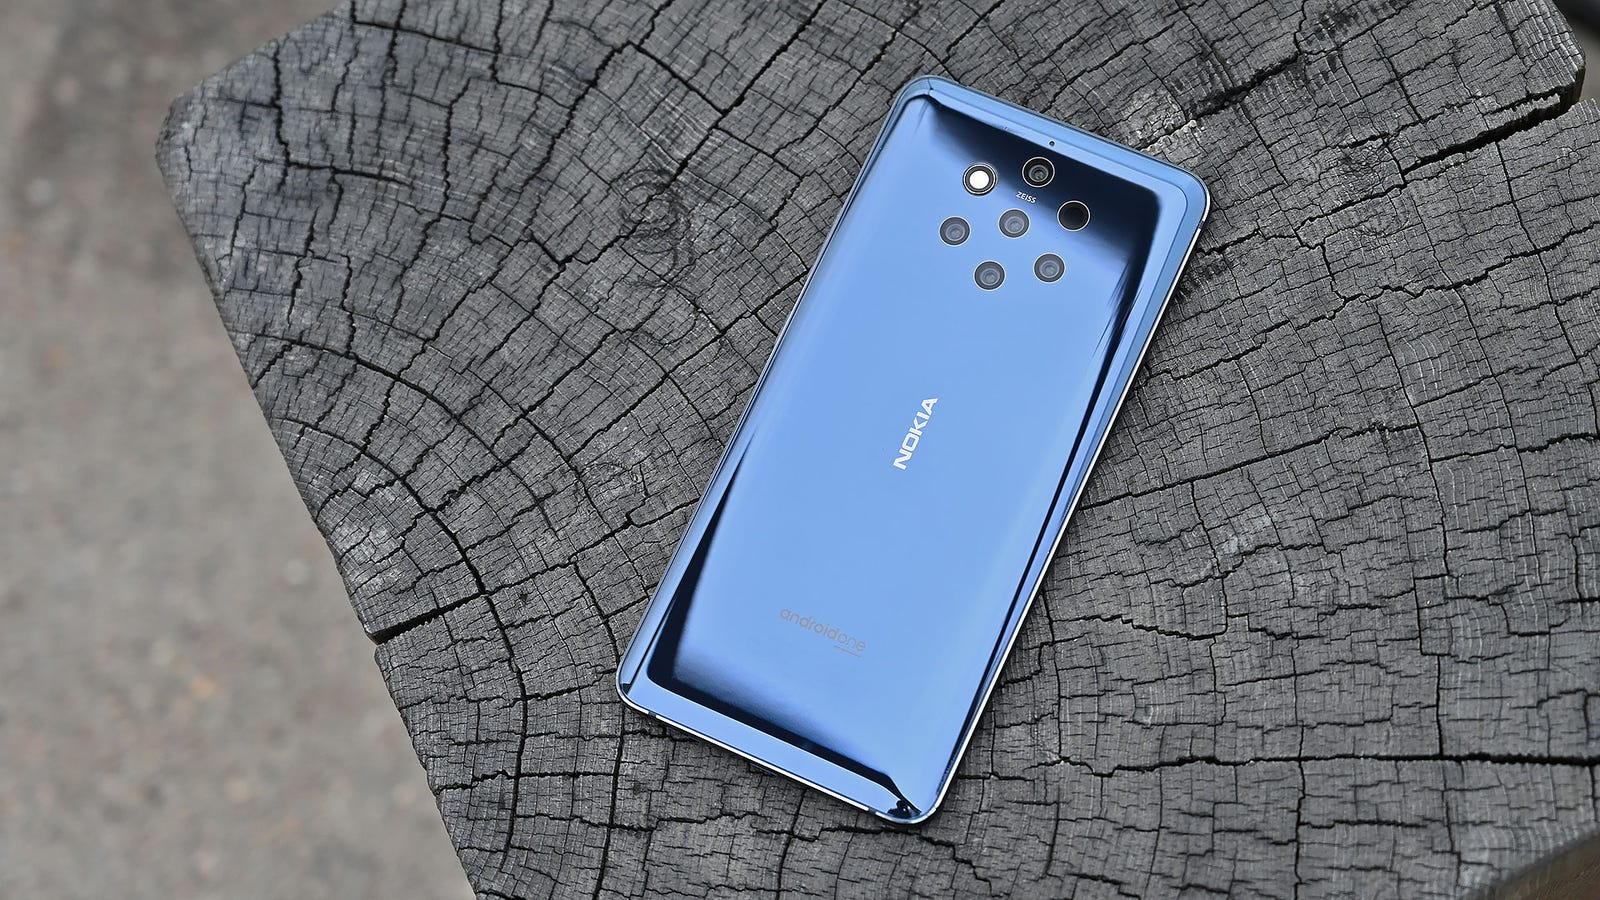 Even with five total cameras, the Nokia 9 doesn't have any camera bumps.